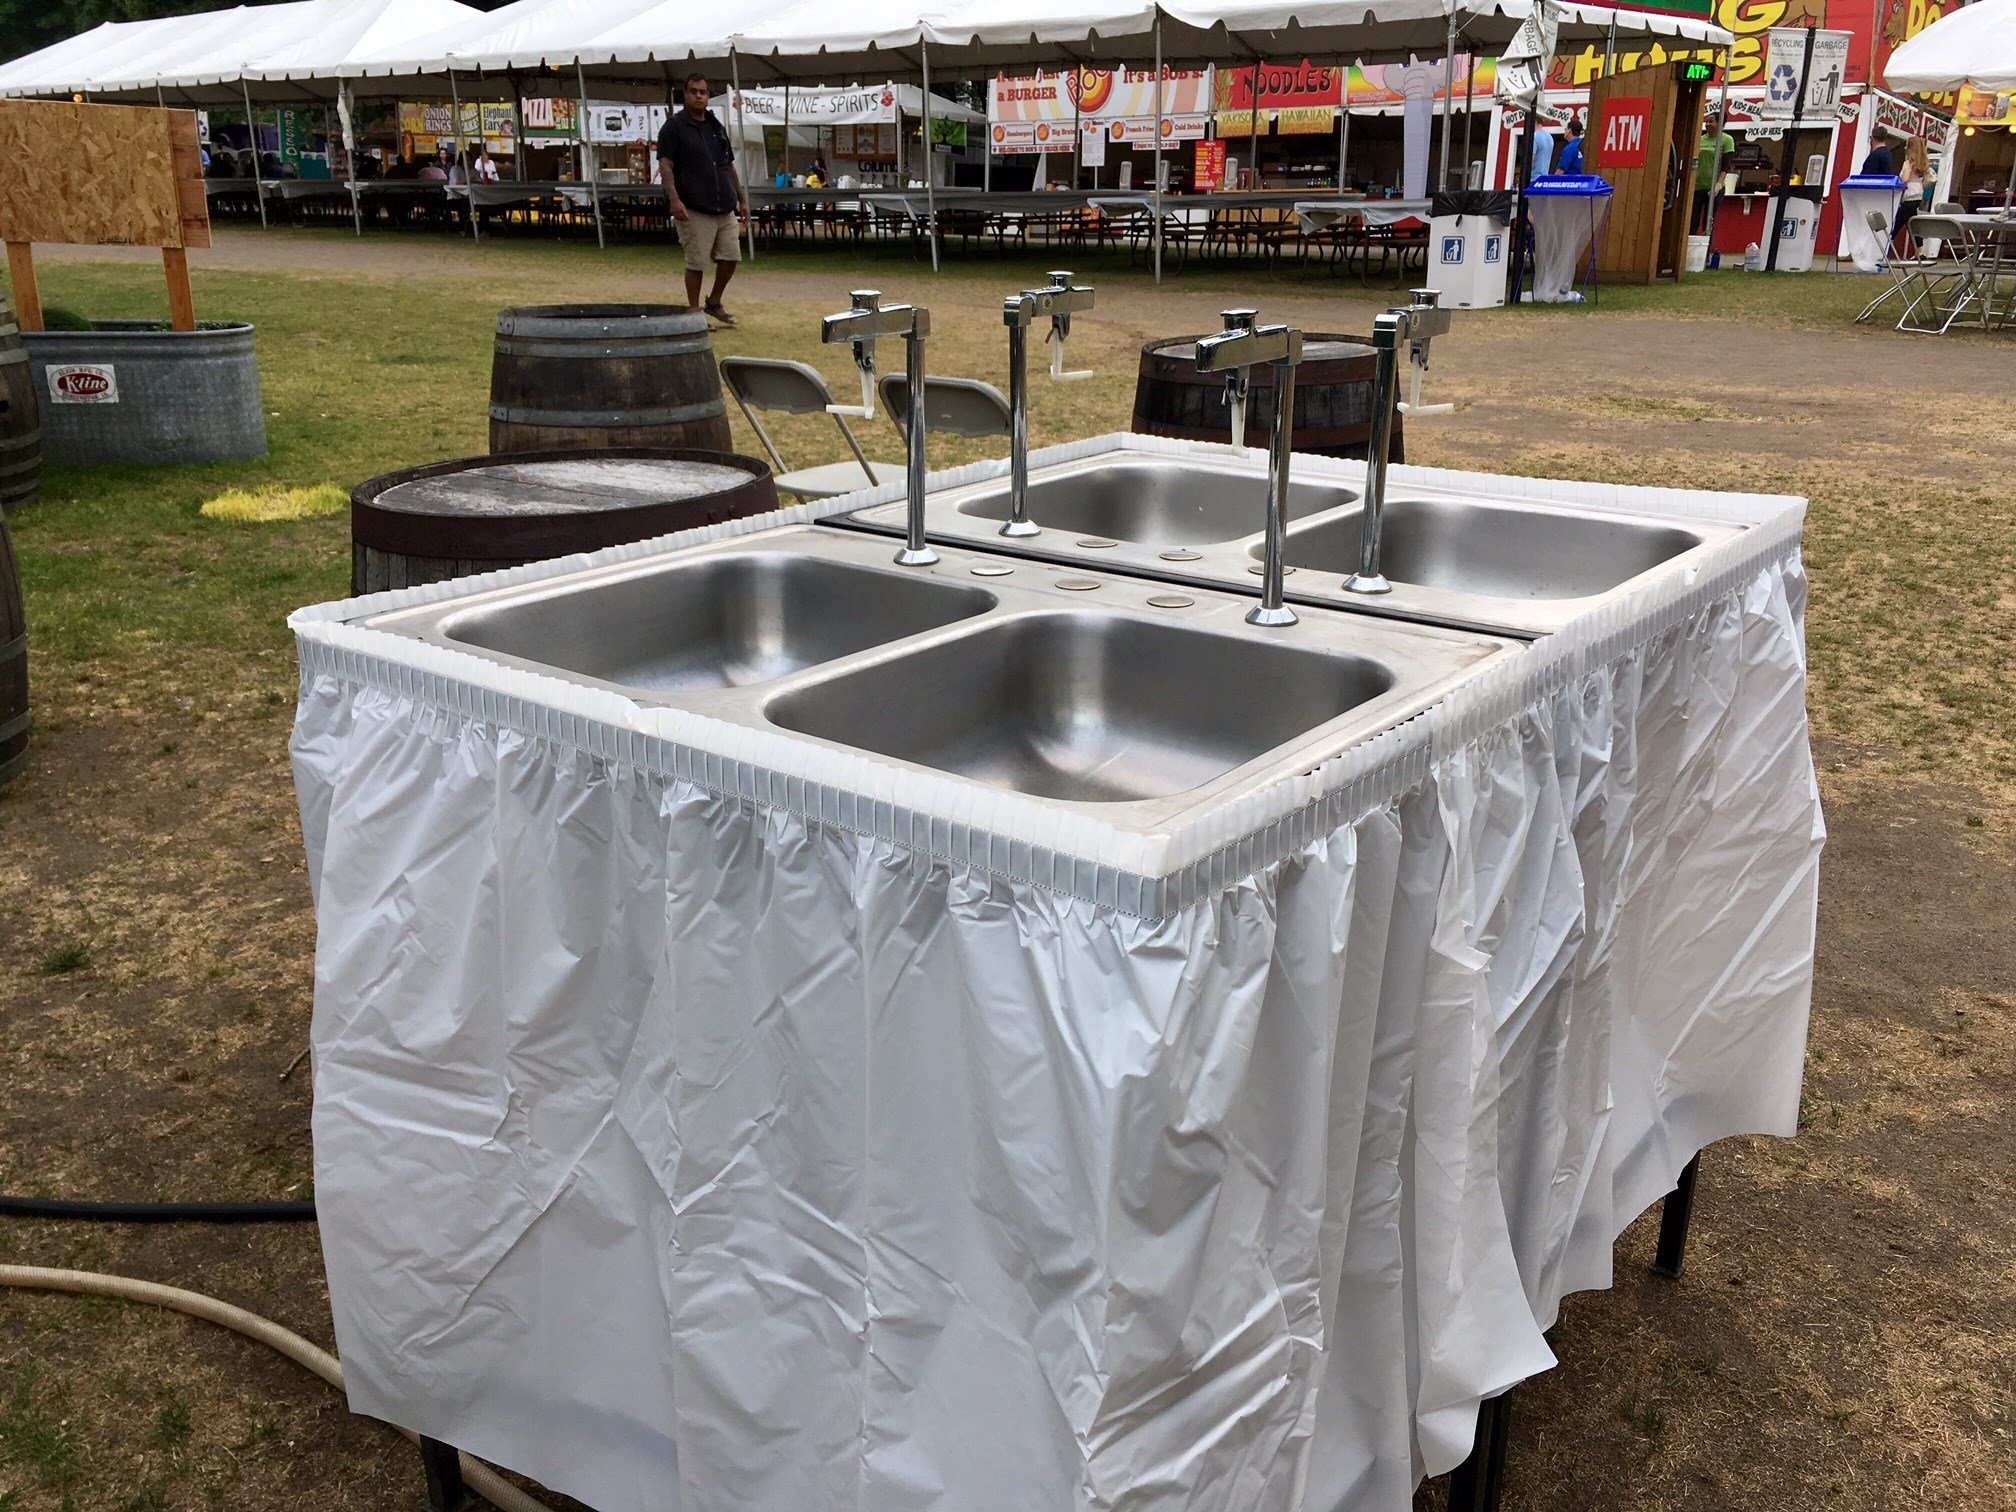 One of two free water bottle filling stations at City Fair. (KPTV)